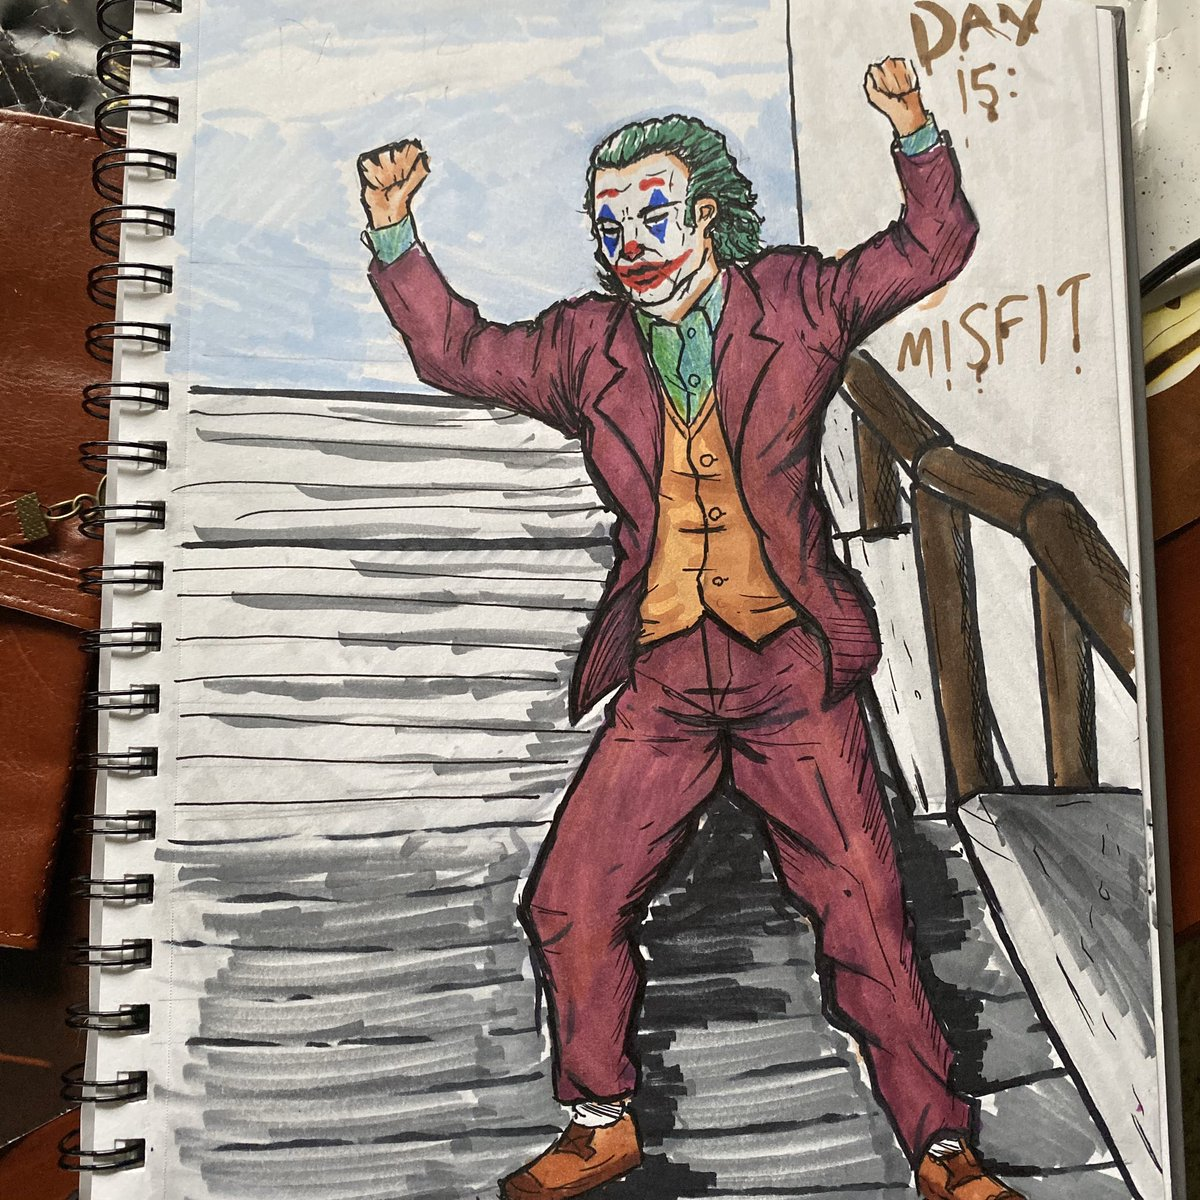 RT @ApexArtsIG: #inktoberday18: Misfit - - - #joker #jokermovie #inktober #comicart #inktober2019 #art https://t.co/um5D3EKpwk